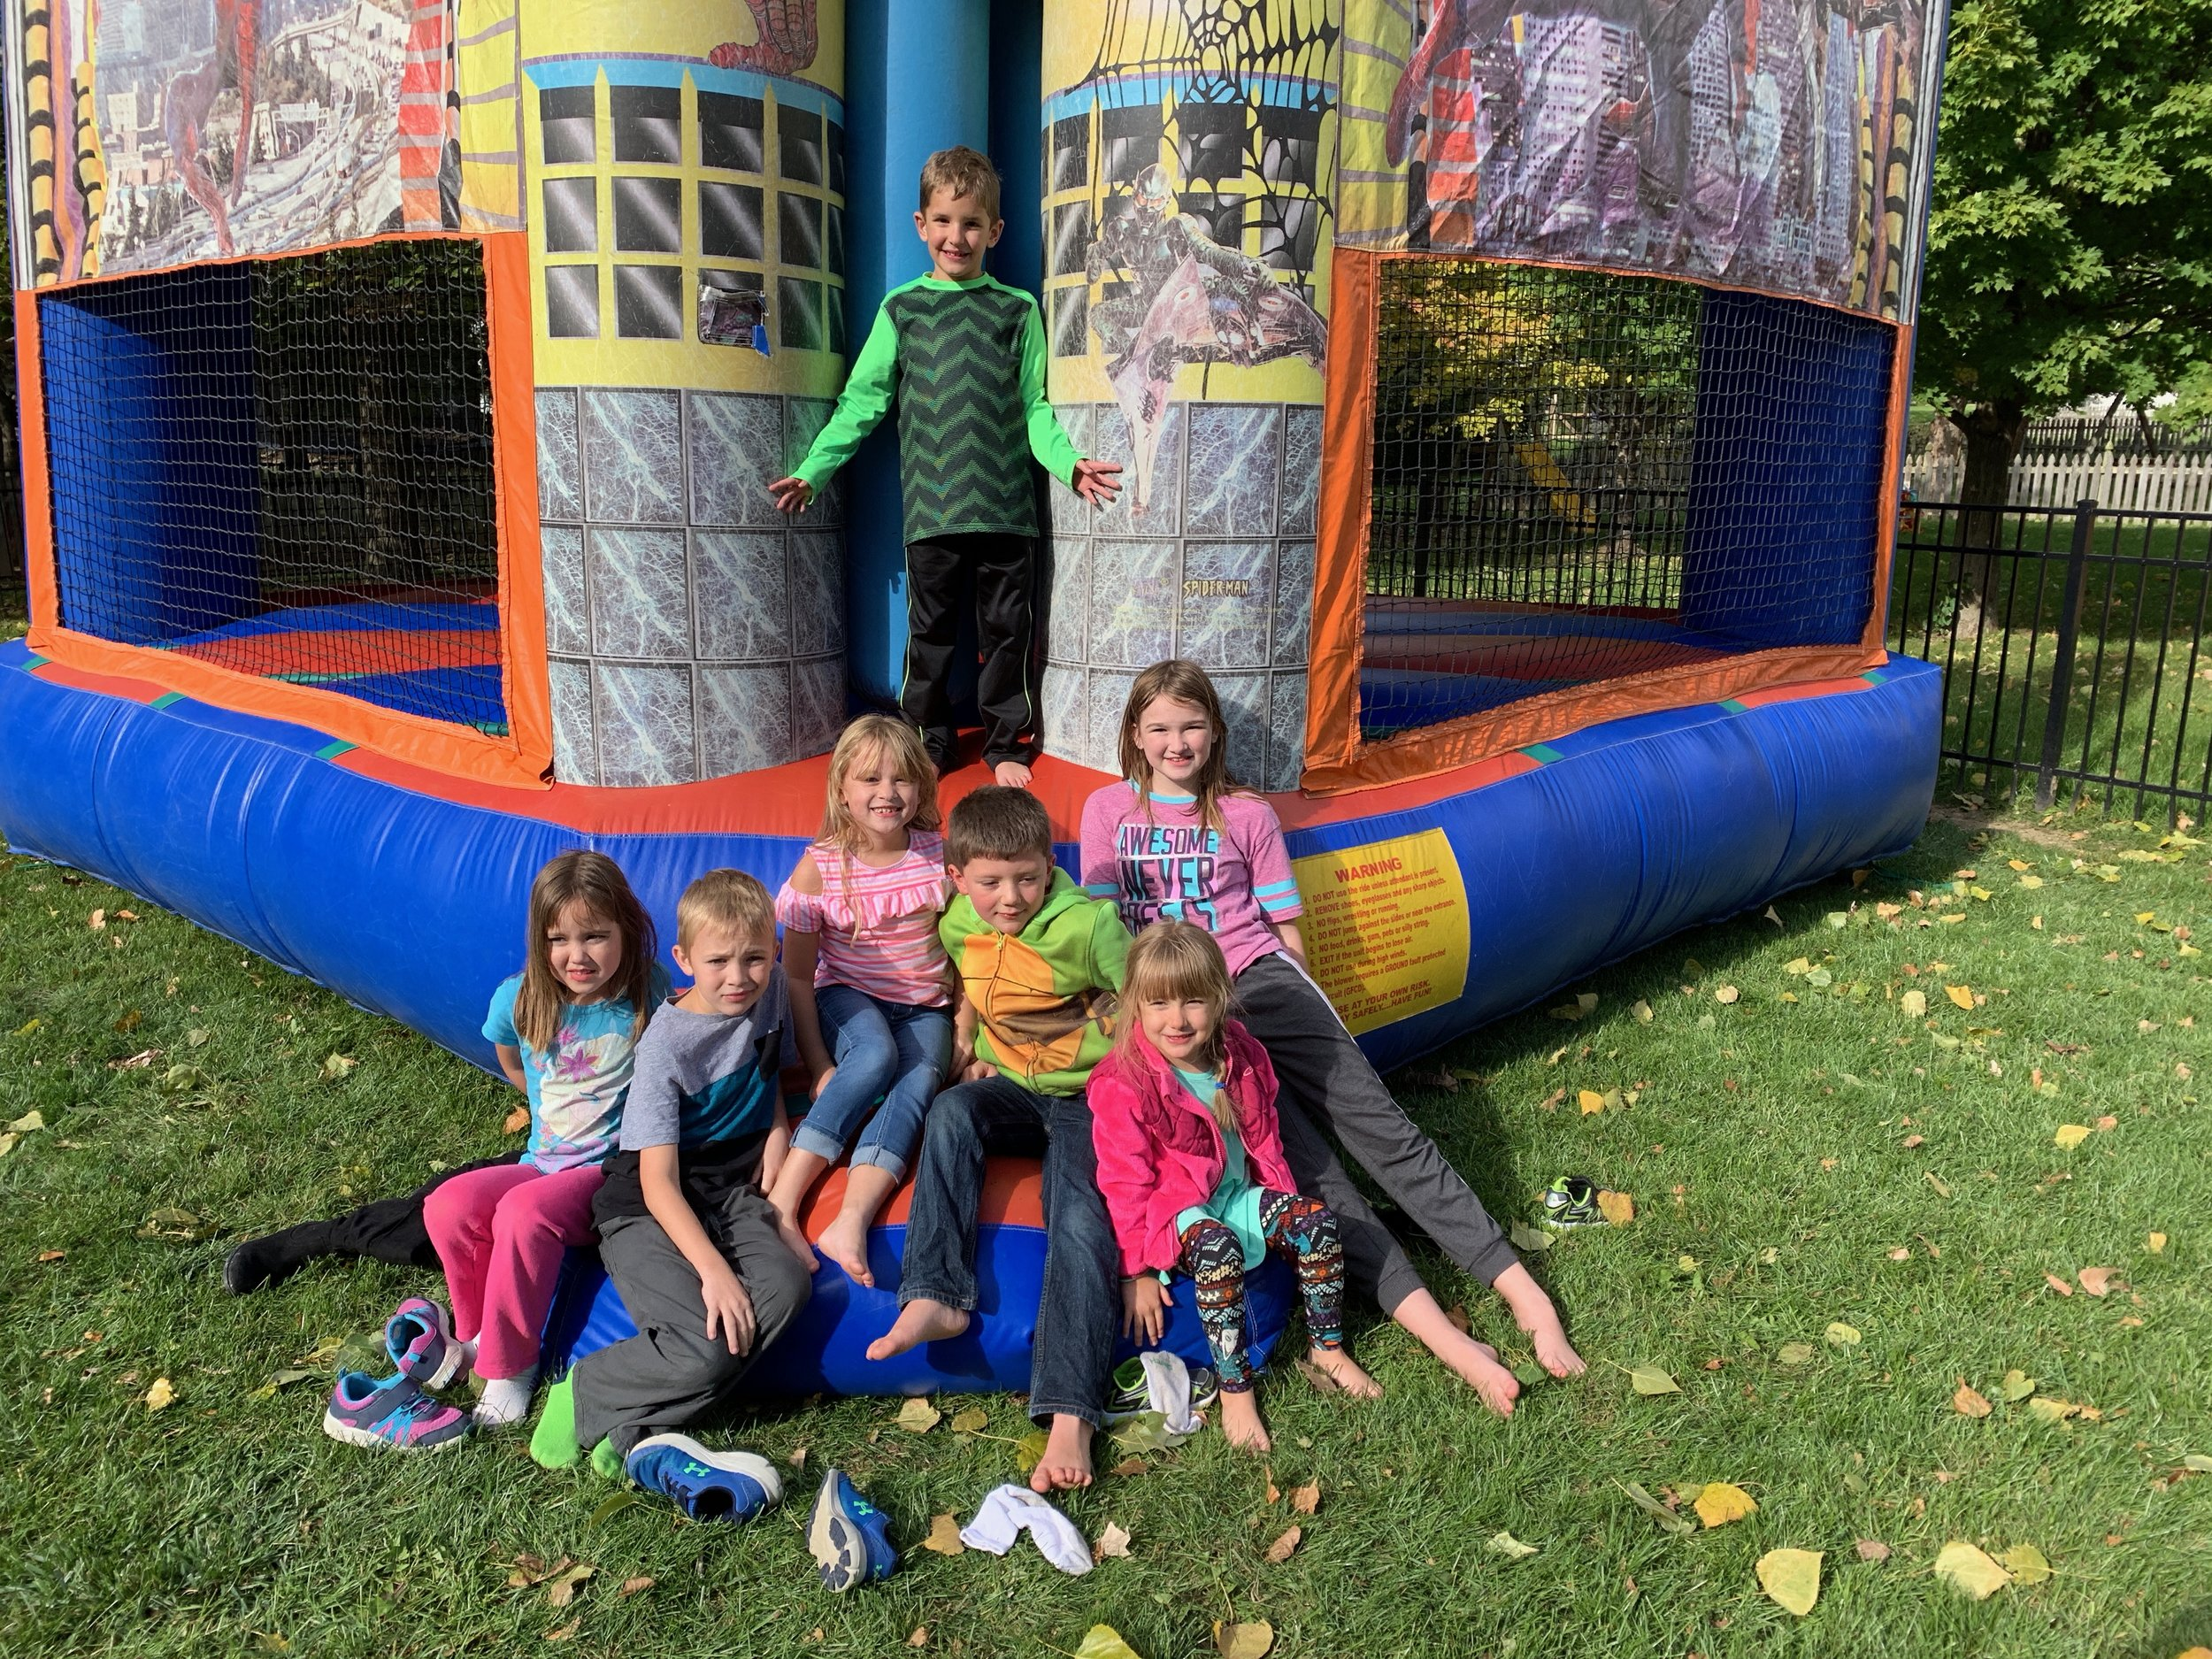 Dylan's friends enjoyed the Bounce House!